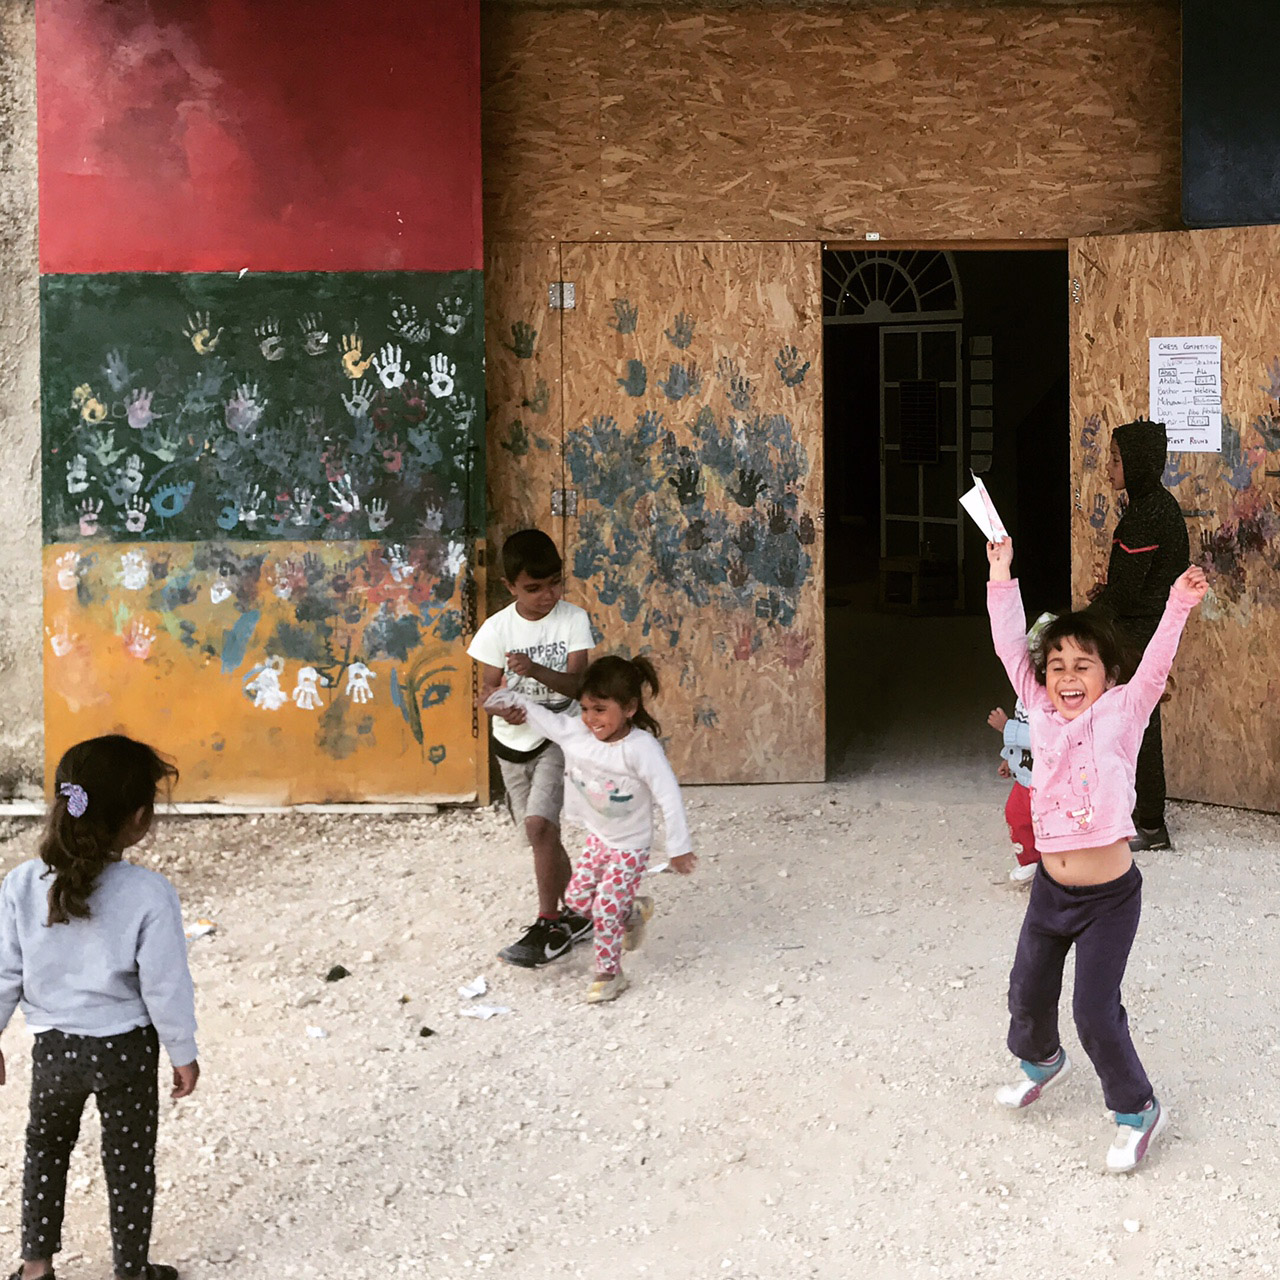 Children playing at Katsikas Camp in Greece in 2018.